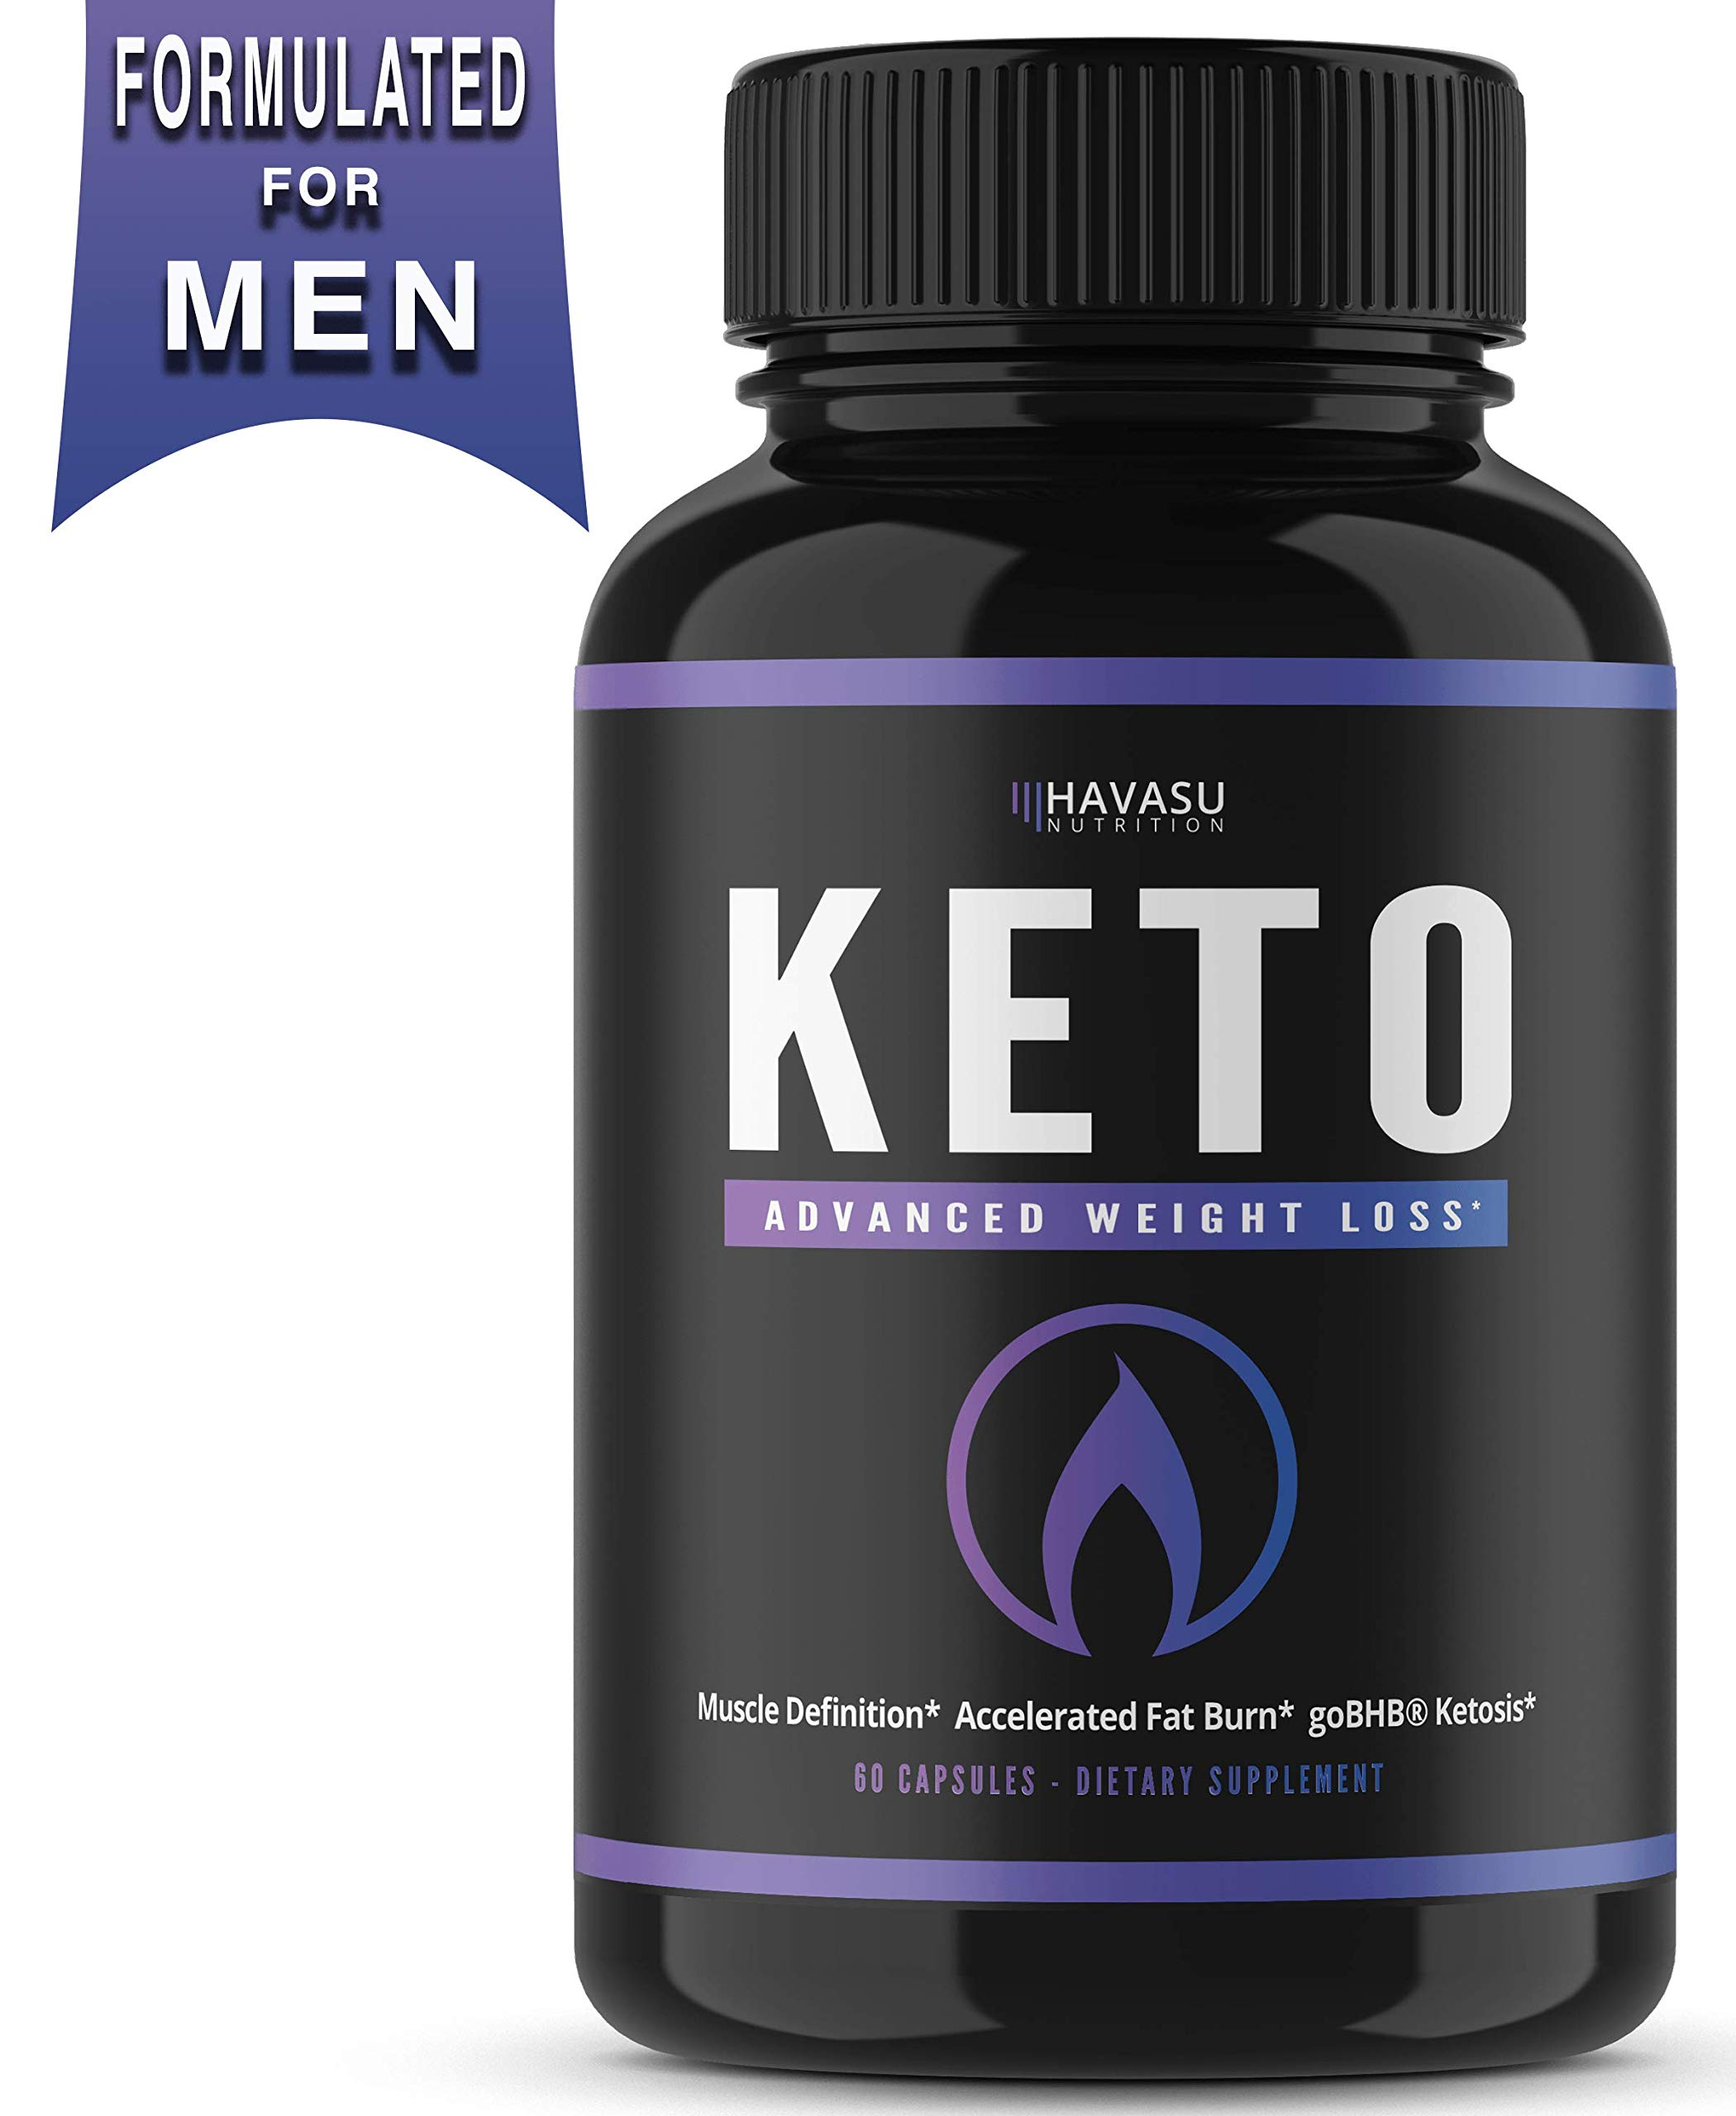 Havasu Nutrition Men's Fat Burner with BHB Exogenous Salts - Weight Loss Pills - Formulated to Provide Optimal Ketosis, Suppress Appetite & Boost Energy - Patented BHB, Non-GMO, 60 Capsules by Havasu Nutrition